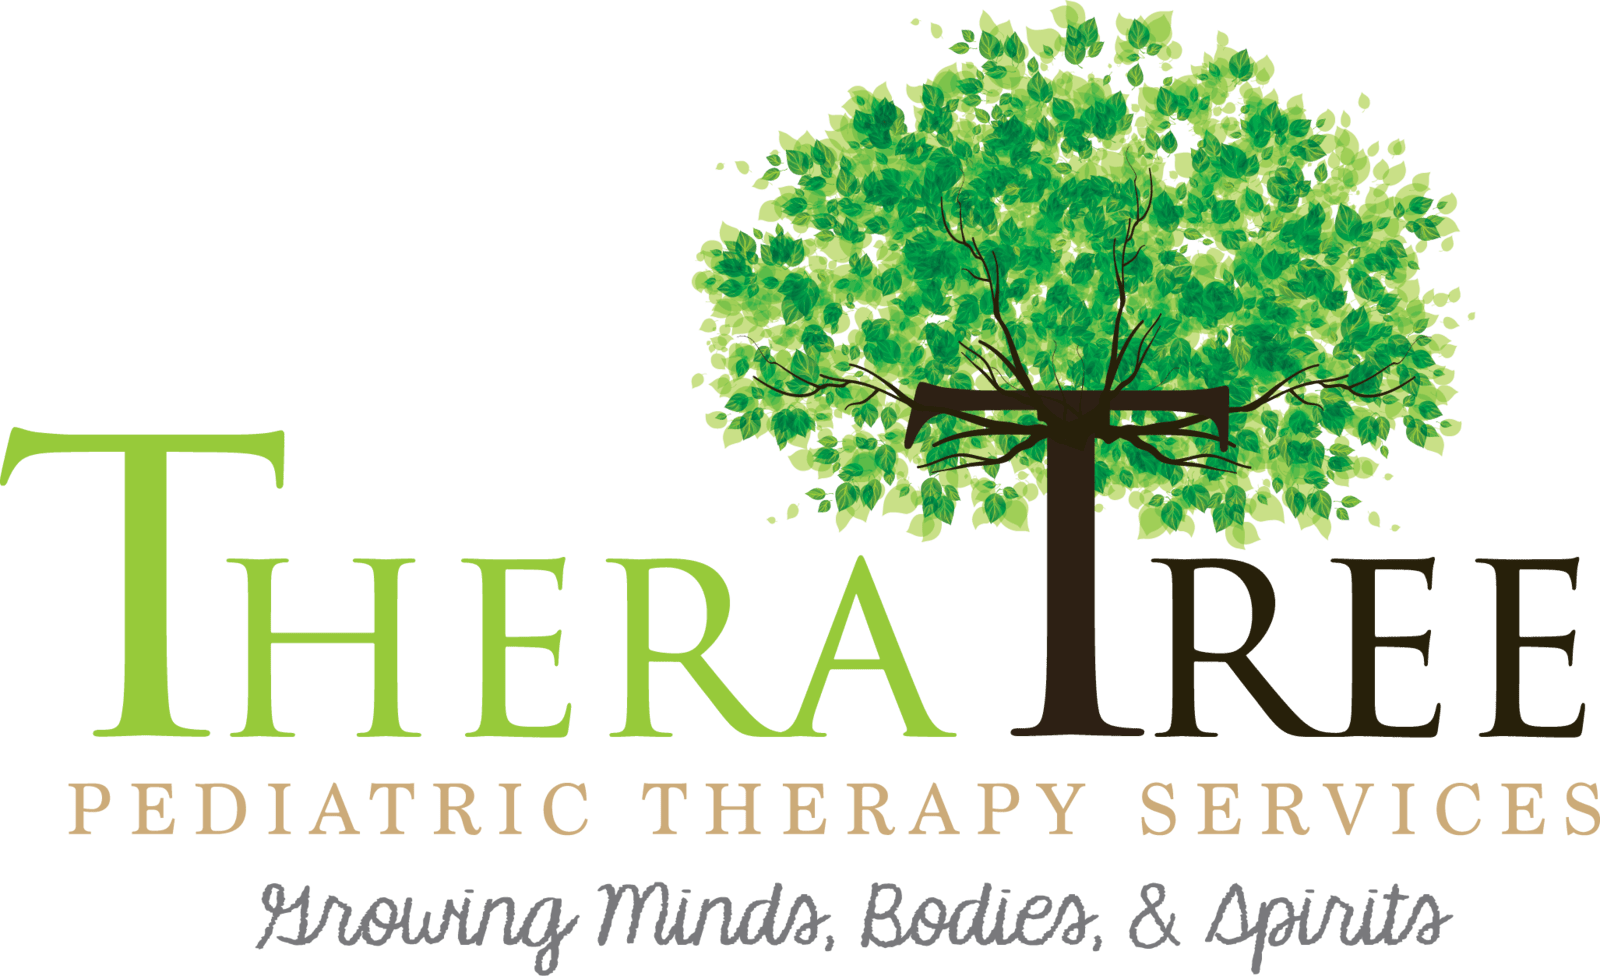 TheraTree Pediatric Therapy